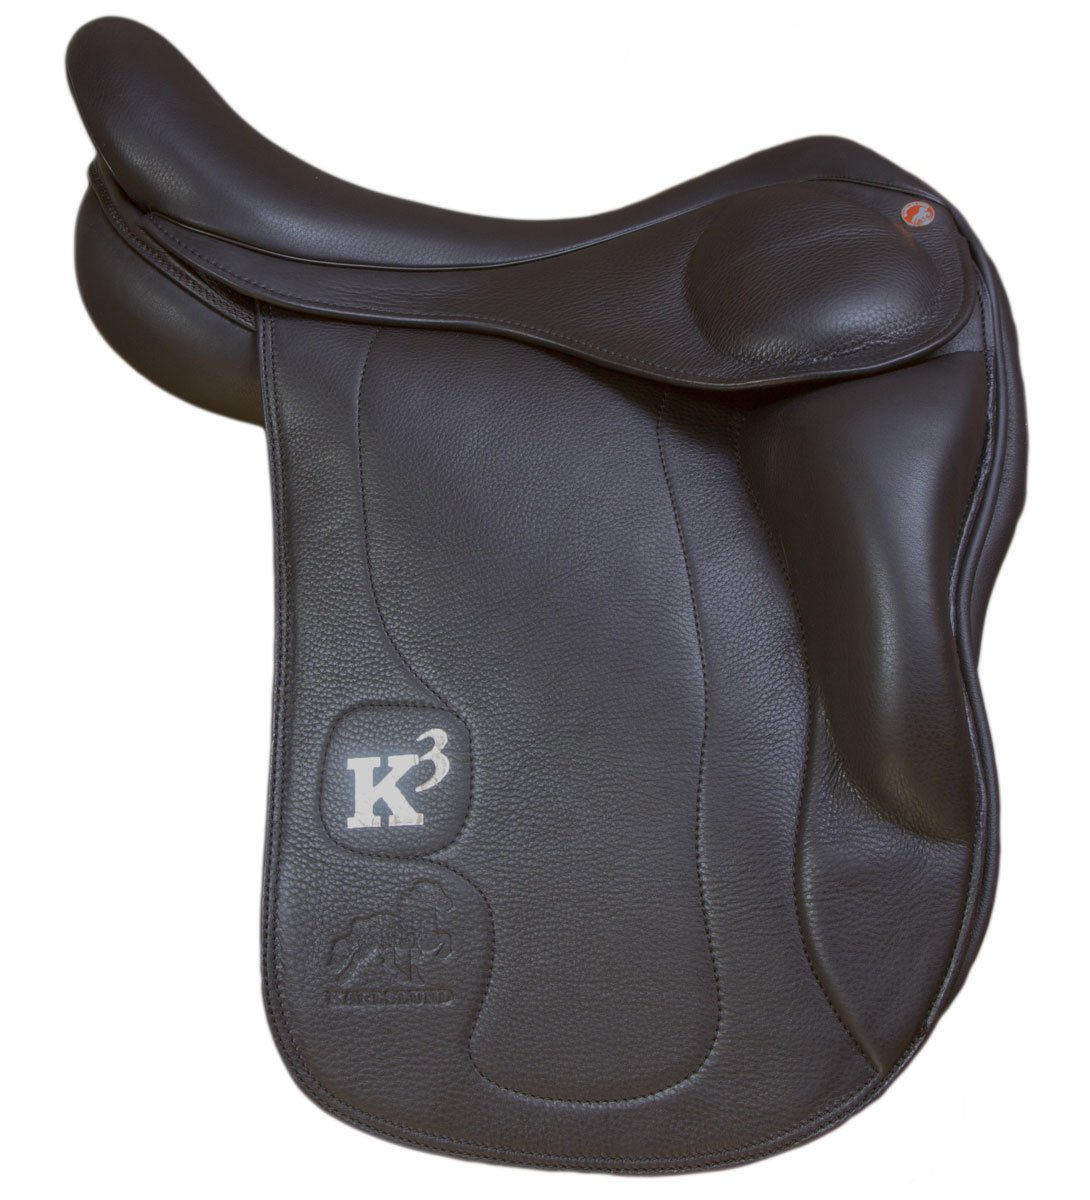 Karlslund Riding Equipment K3 Saddle with Short Knee Blocks - Black, 16-Inch/44 cm